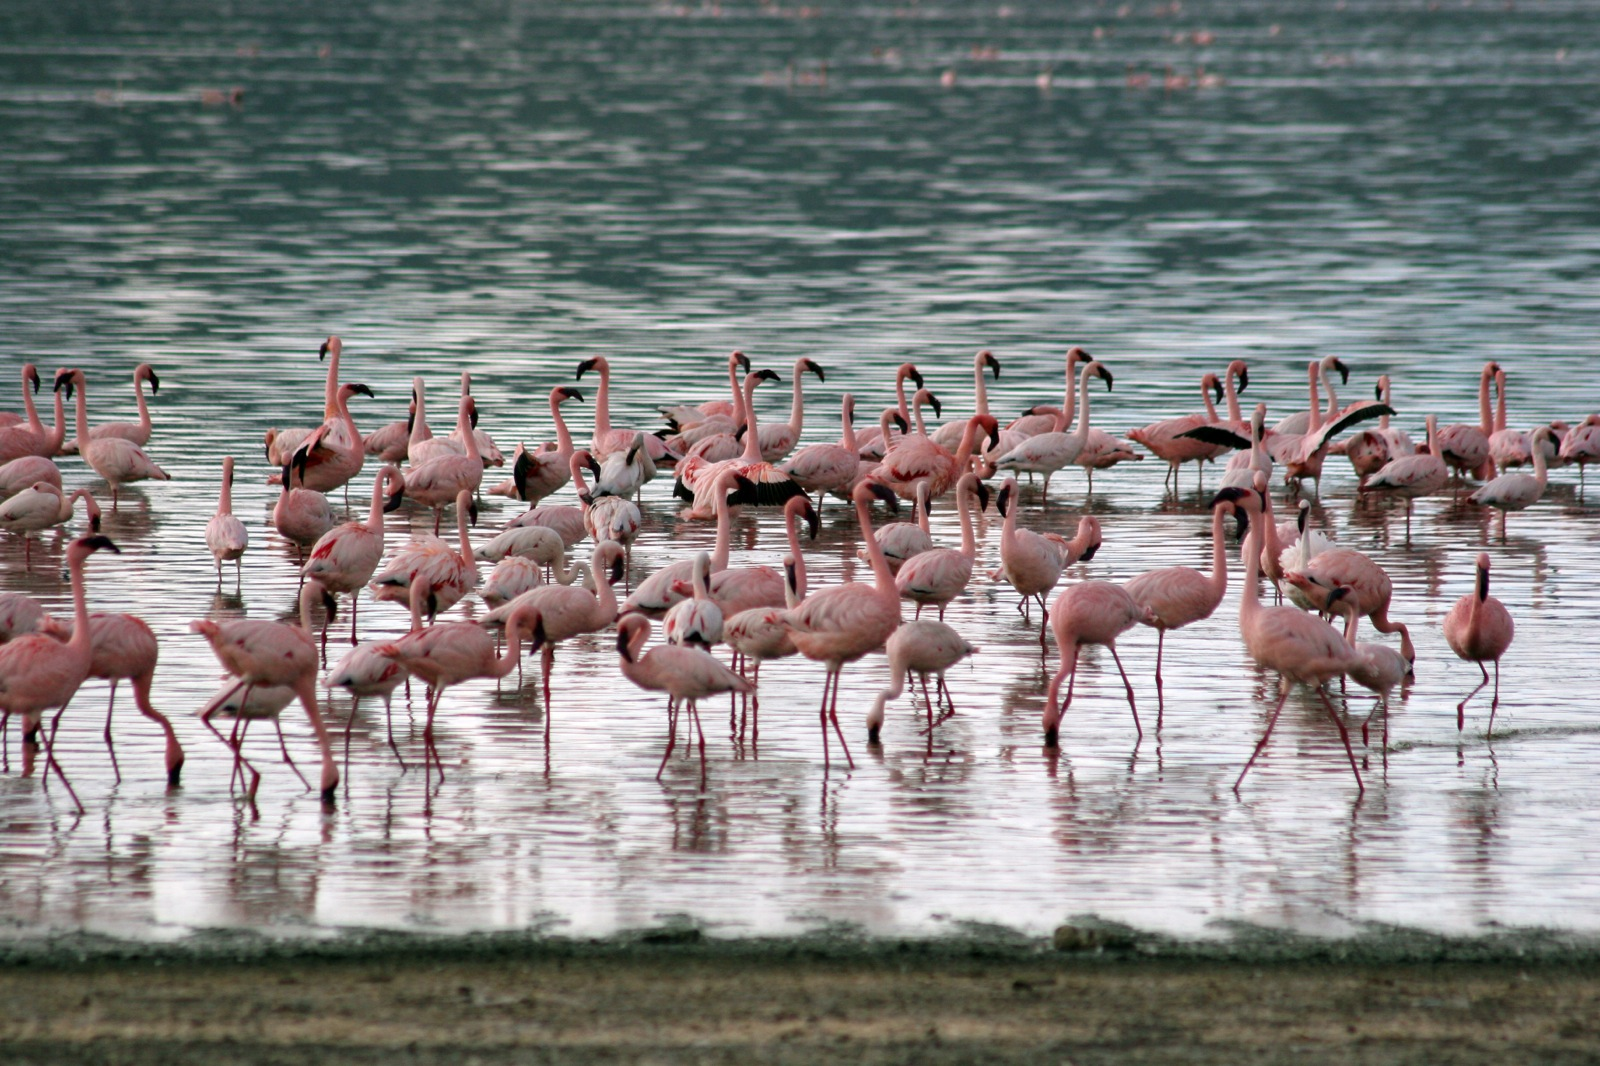 Hundreds of pink flamingoes stand in the shallows of a calm lake.